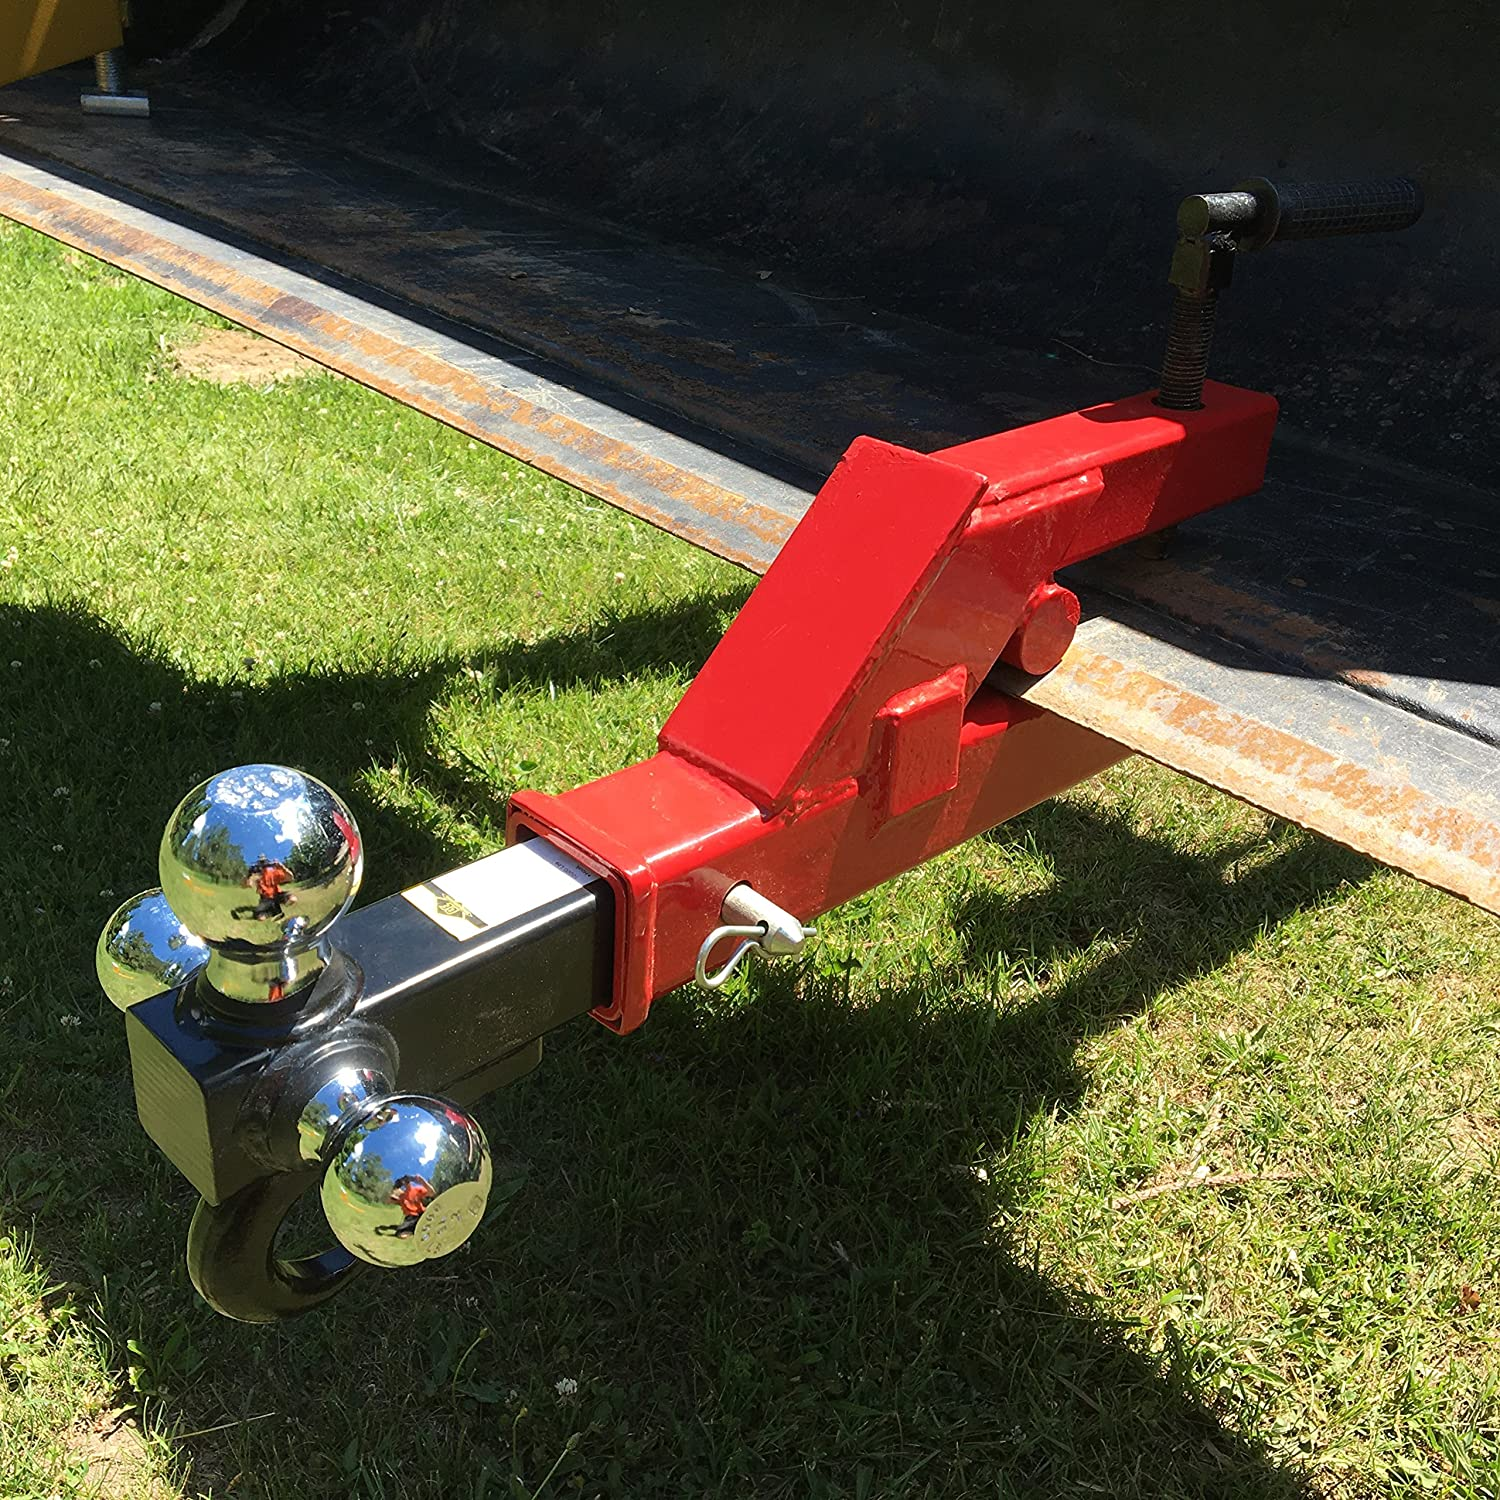 Clamp on to bucket 2 trailer receiver hitch for tractor loaders and skid steers